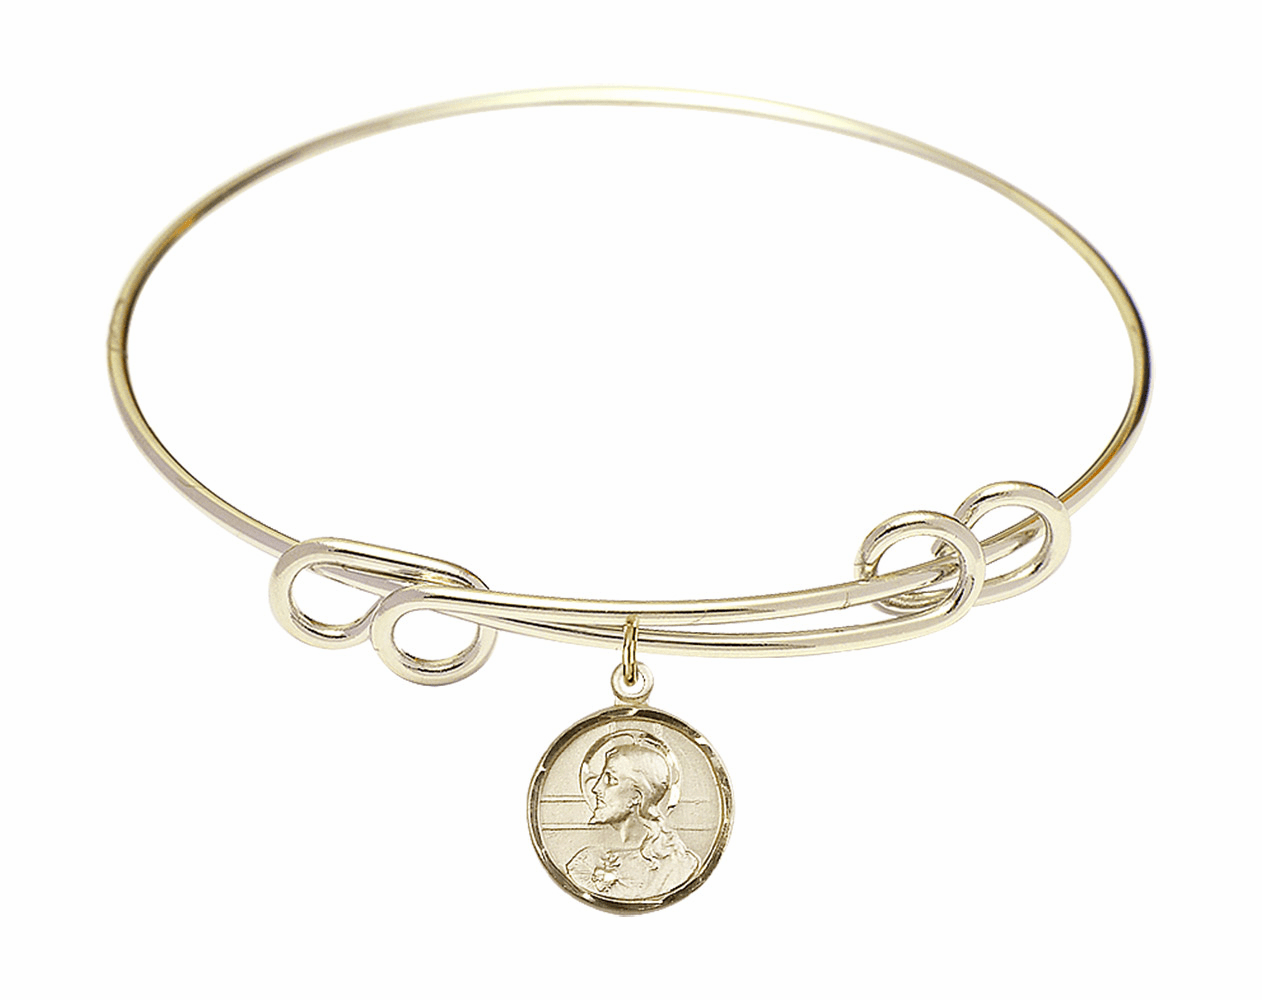 Round Double Loop Bangle Bracelet Scapular 14kt Gold-filled Charm by Bliss Mfg